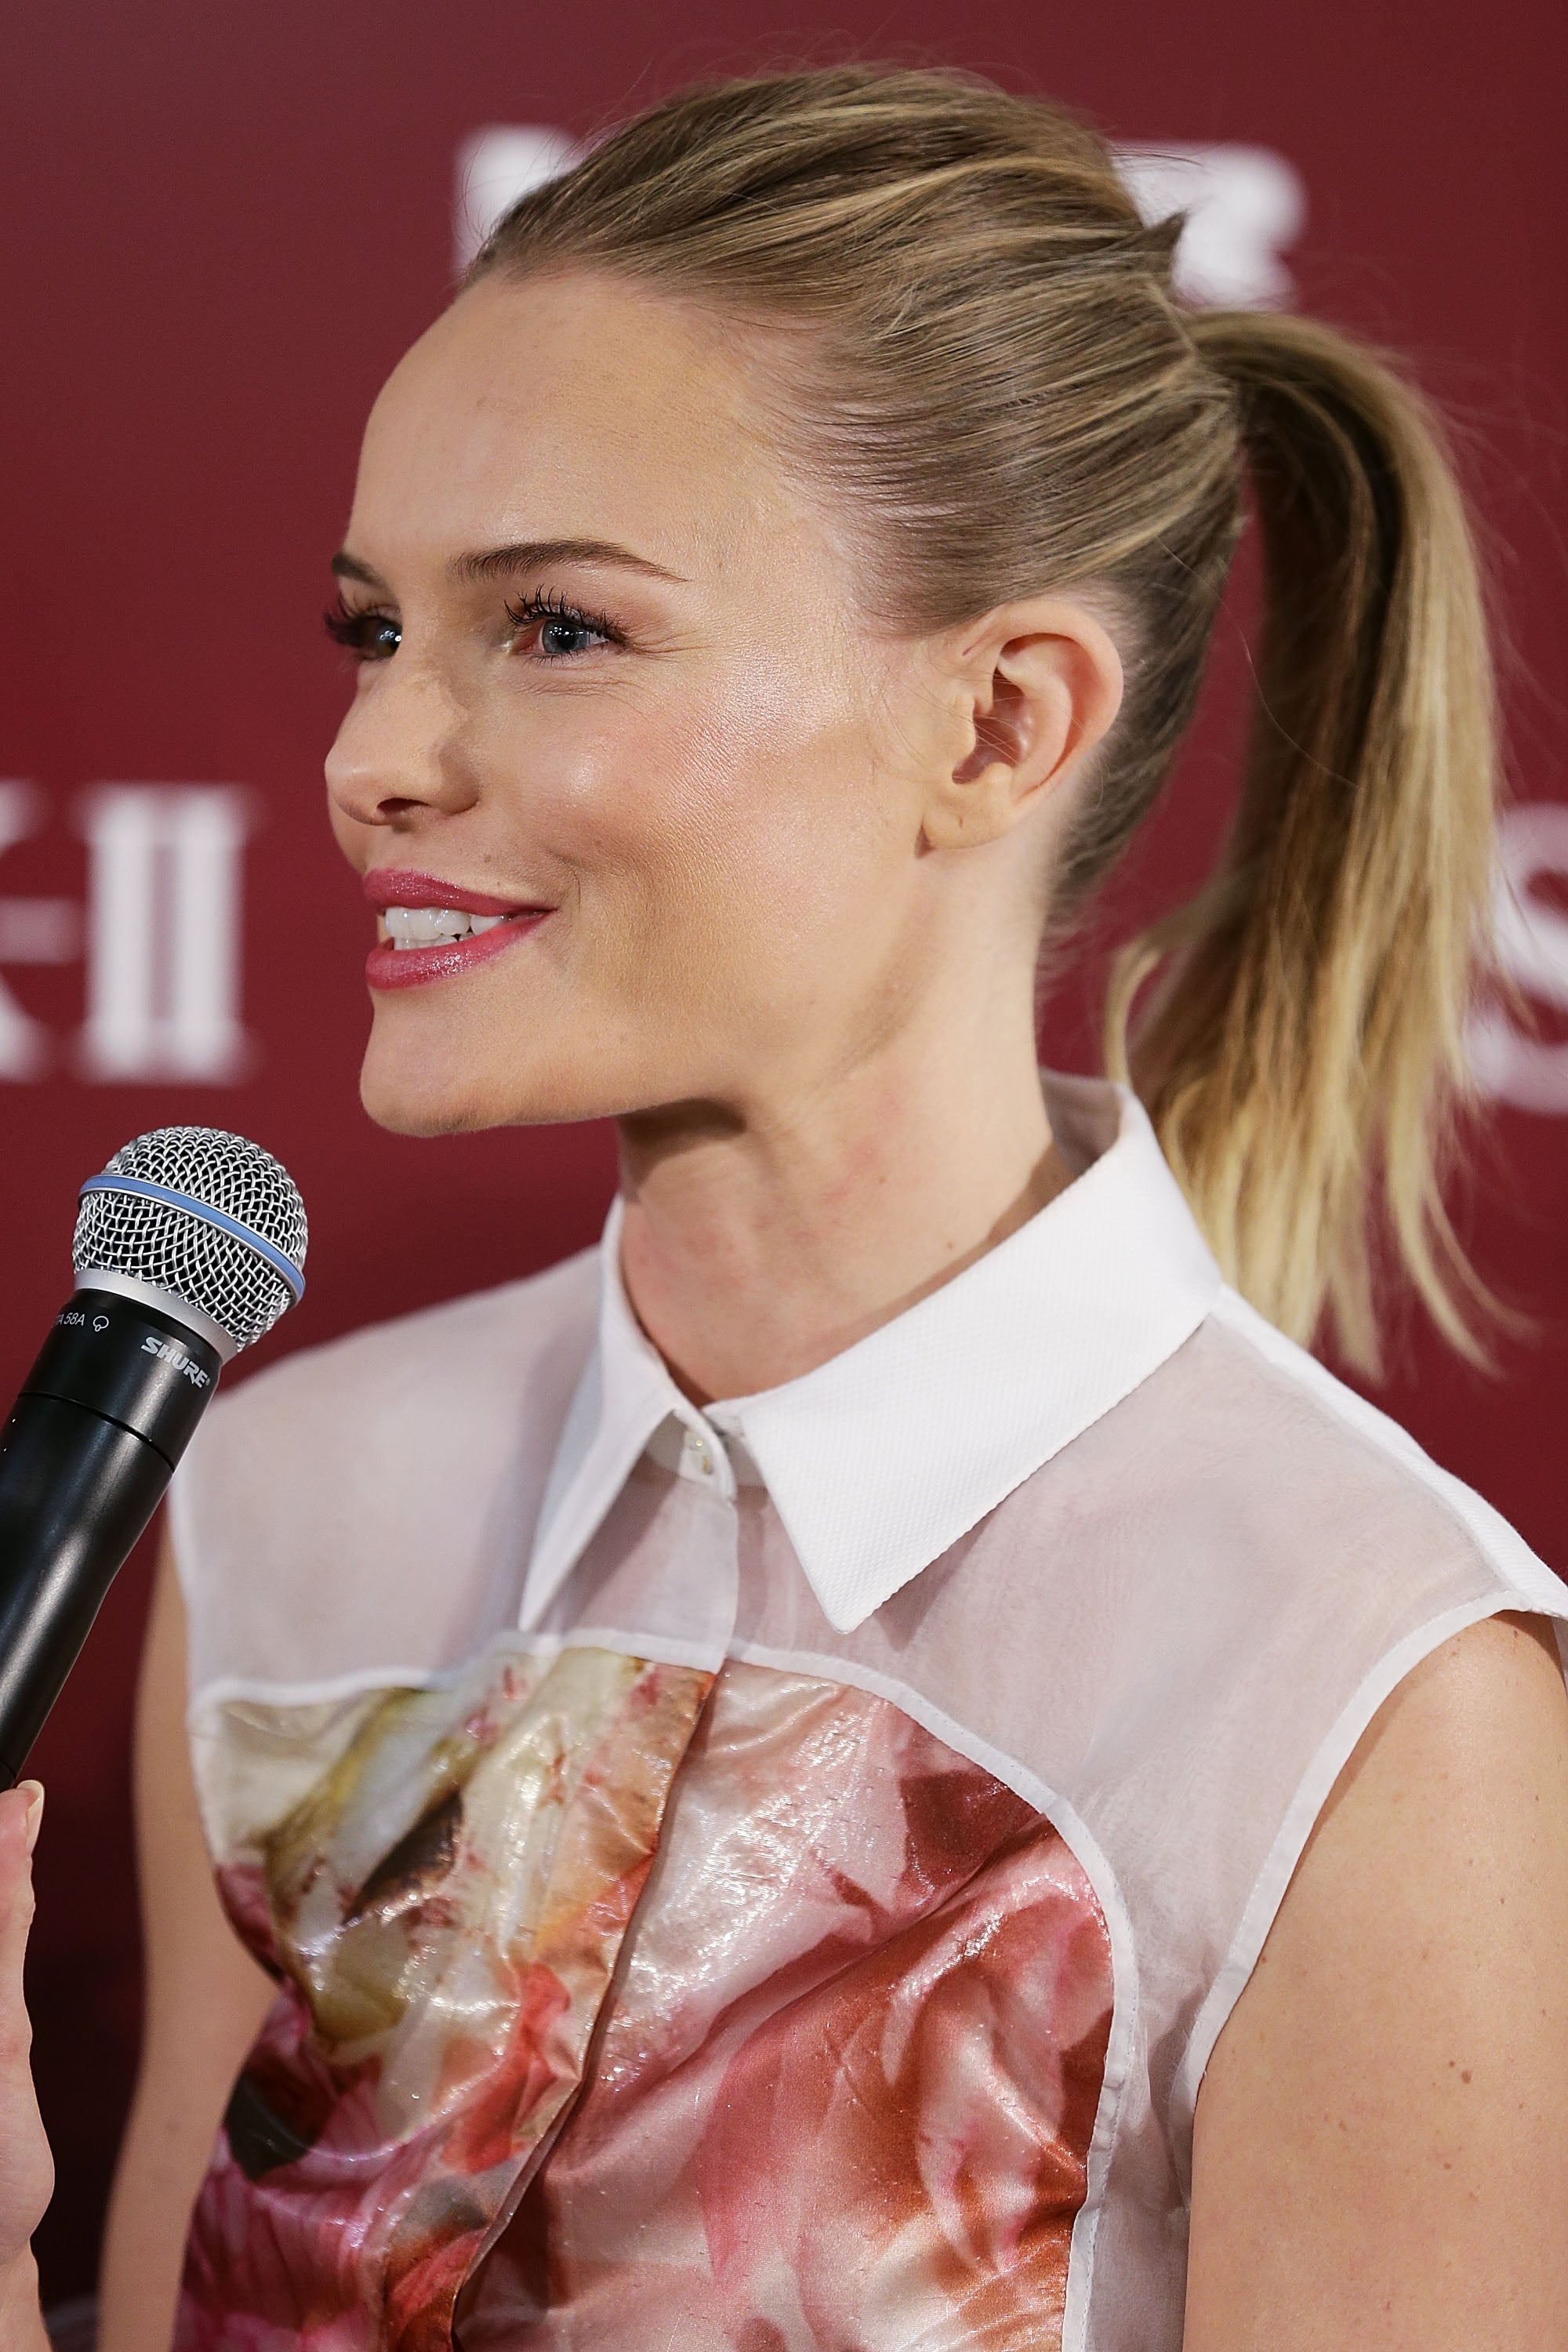 Kate Bosworth had a smile on her face to promote her skin care line in Sydney.